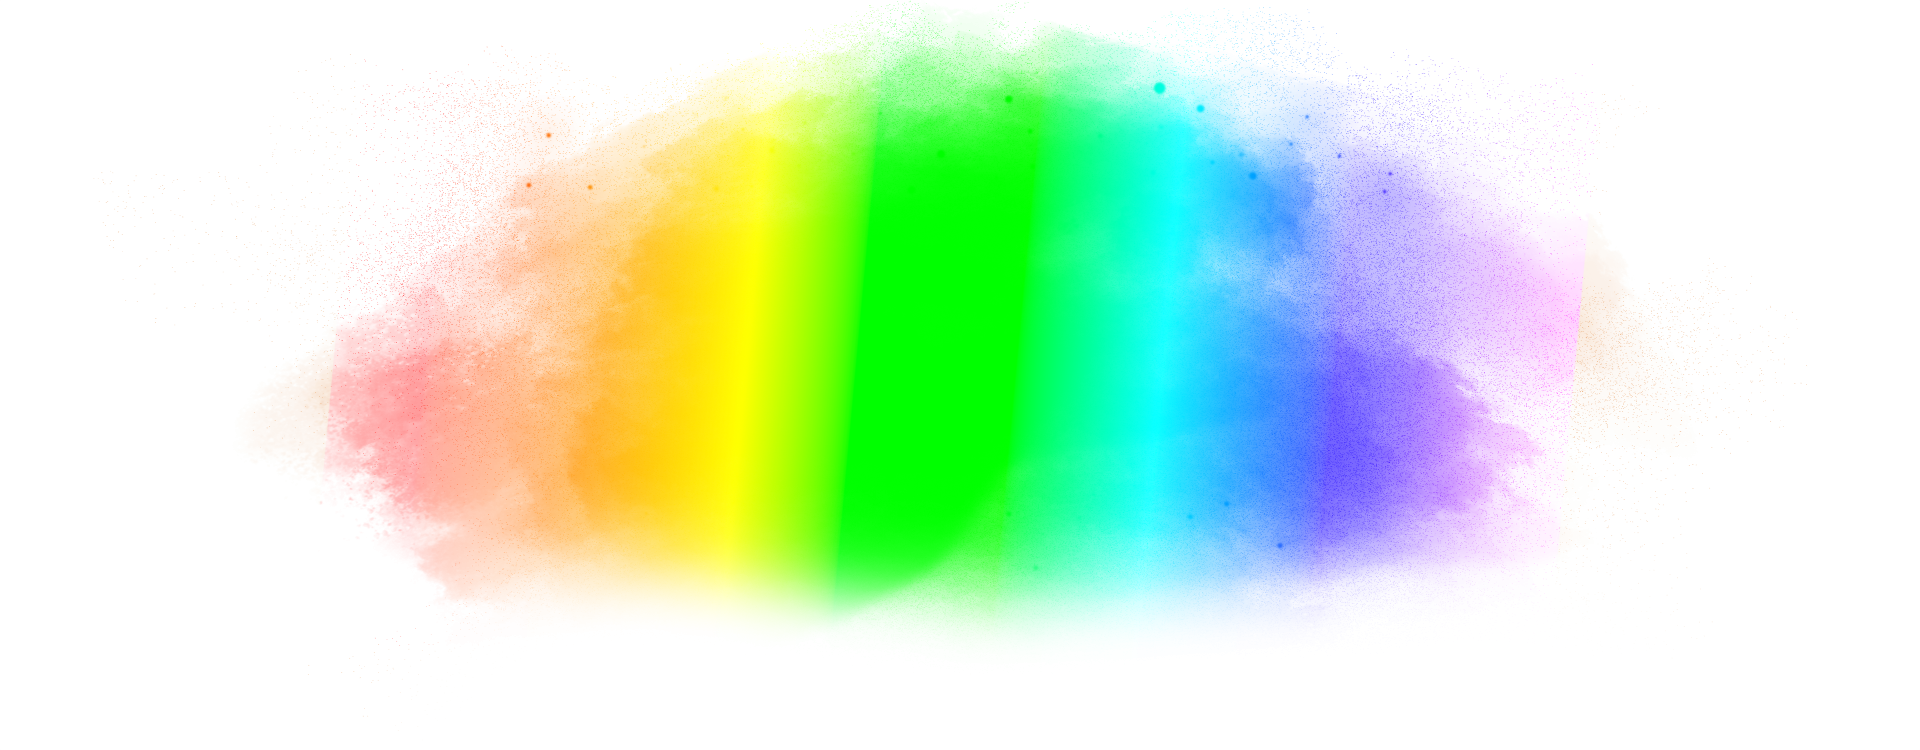 AGON_PRO_LIGHT_FX_FW_AG274FZ_BACKGROUND.png